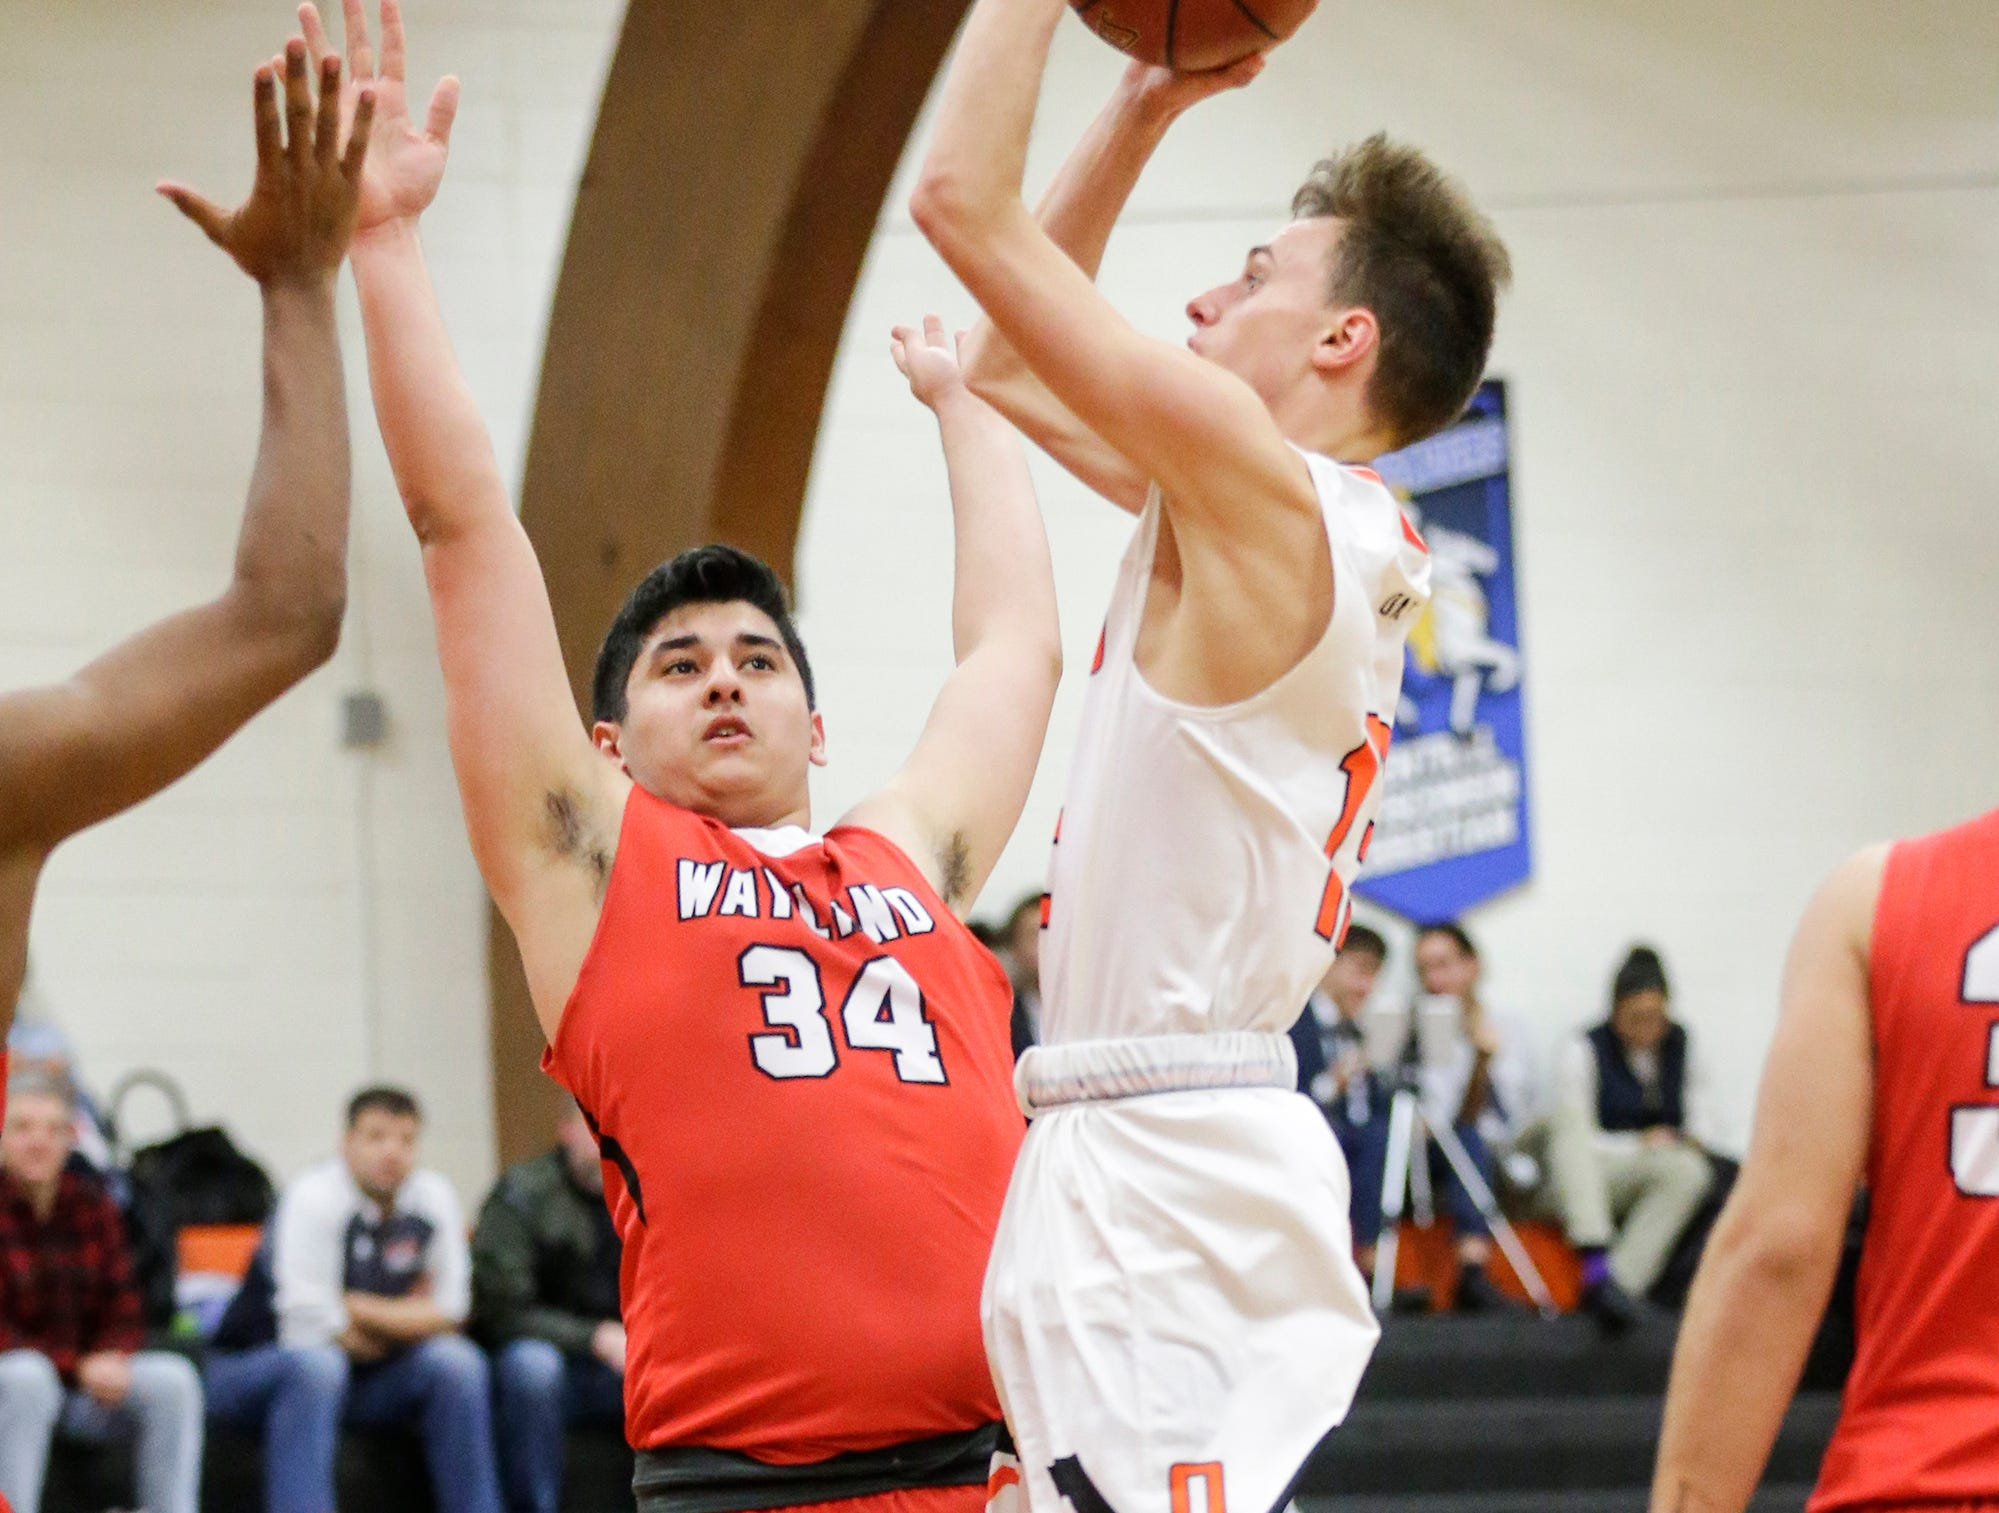 Oakfield High School boys basketball's Tyler Streeter attempts a shot over Wayland Academy's Peter Petrakis January 11, 2019 during their game in Oakfield. Oakfield won the game 56-48. Doug Raflik/USA TODAY NETWORK-Wisconsin